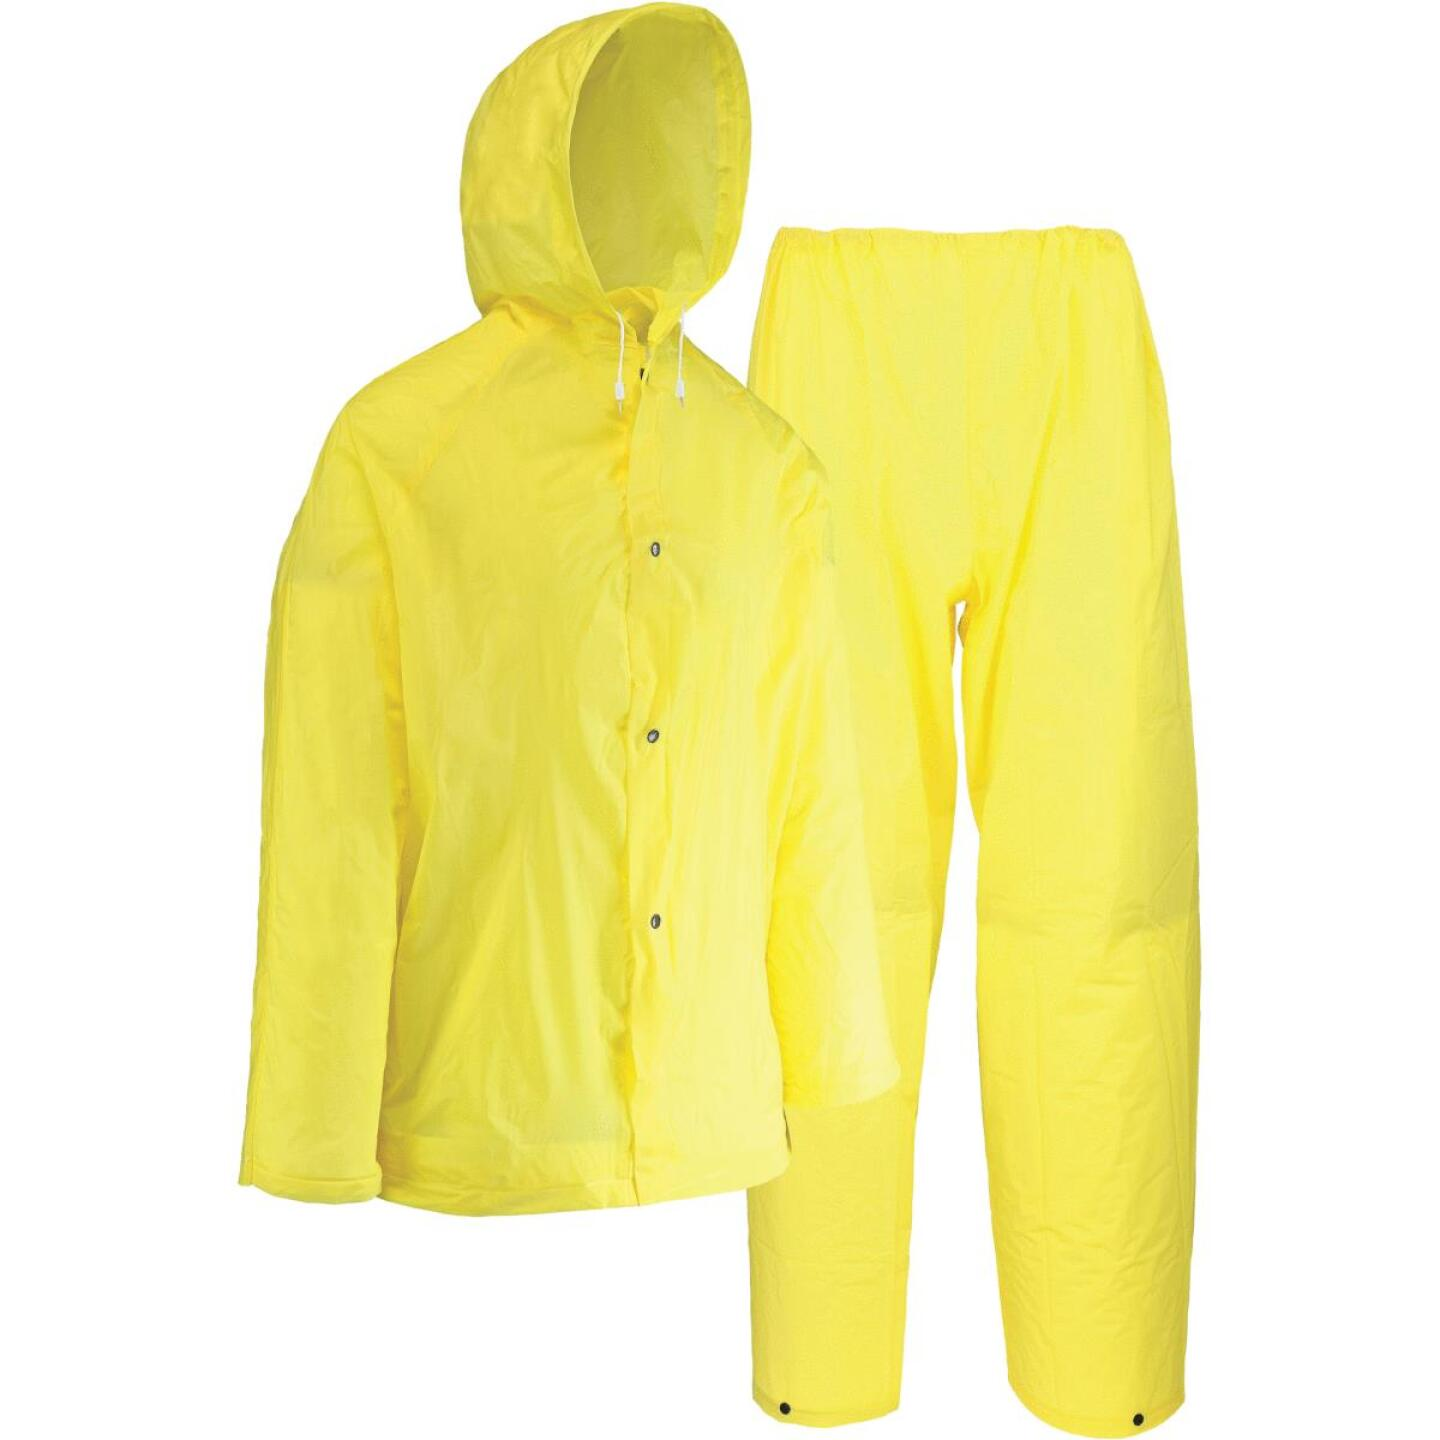 West Chester Large 2-Piece Yellow EVA Rain Suit Image 1